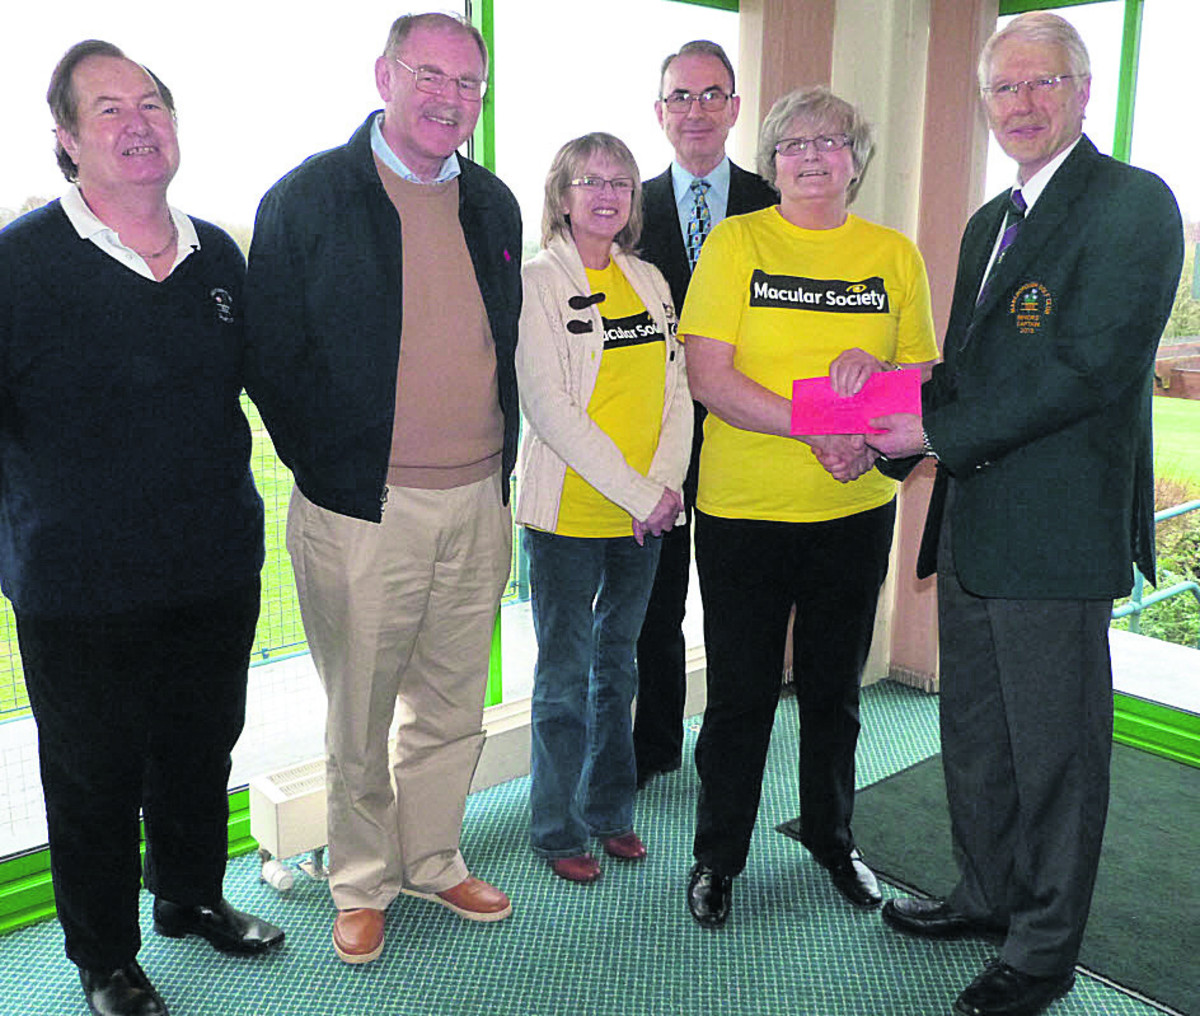 Phil Smith, Marlborough Golf Club seniors' captain elect; Dave Ferris, club seniors' chairman; Sue Lampard, Marlborough Macular Society treasurer; Jame